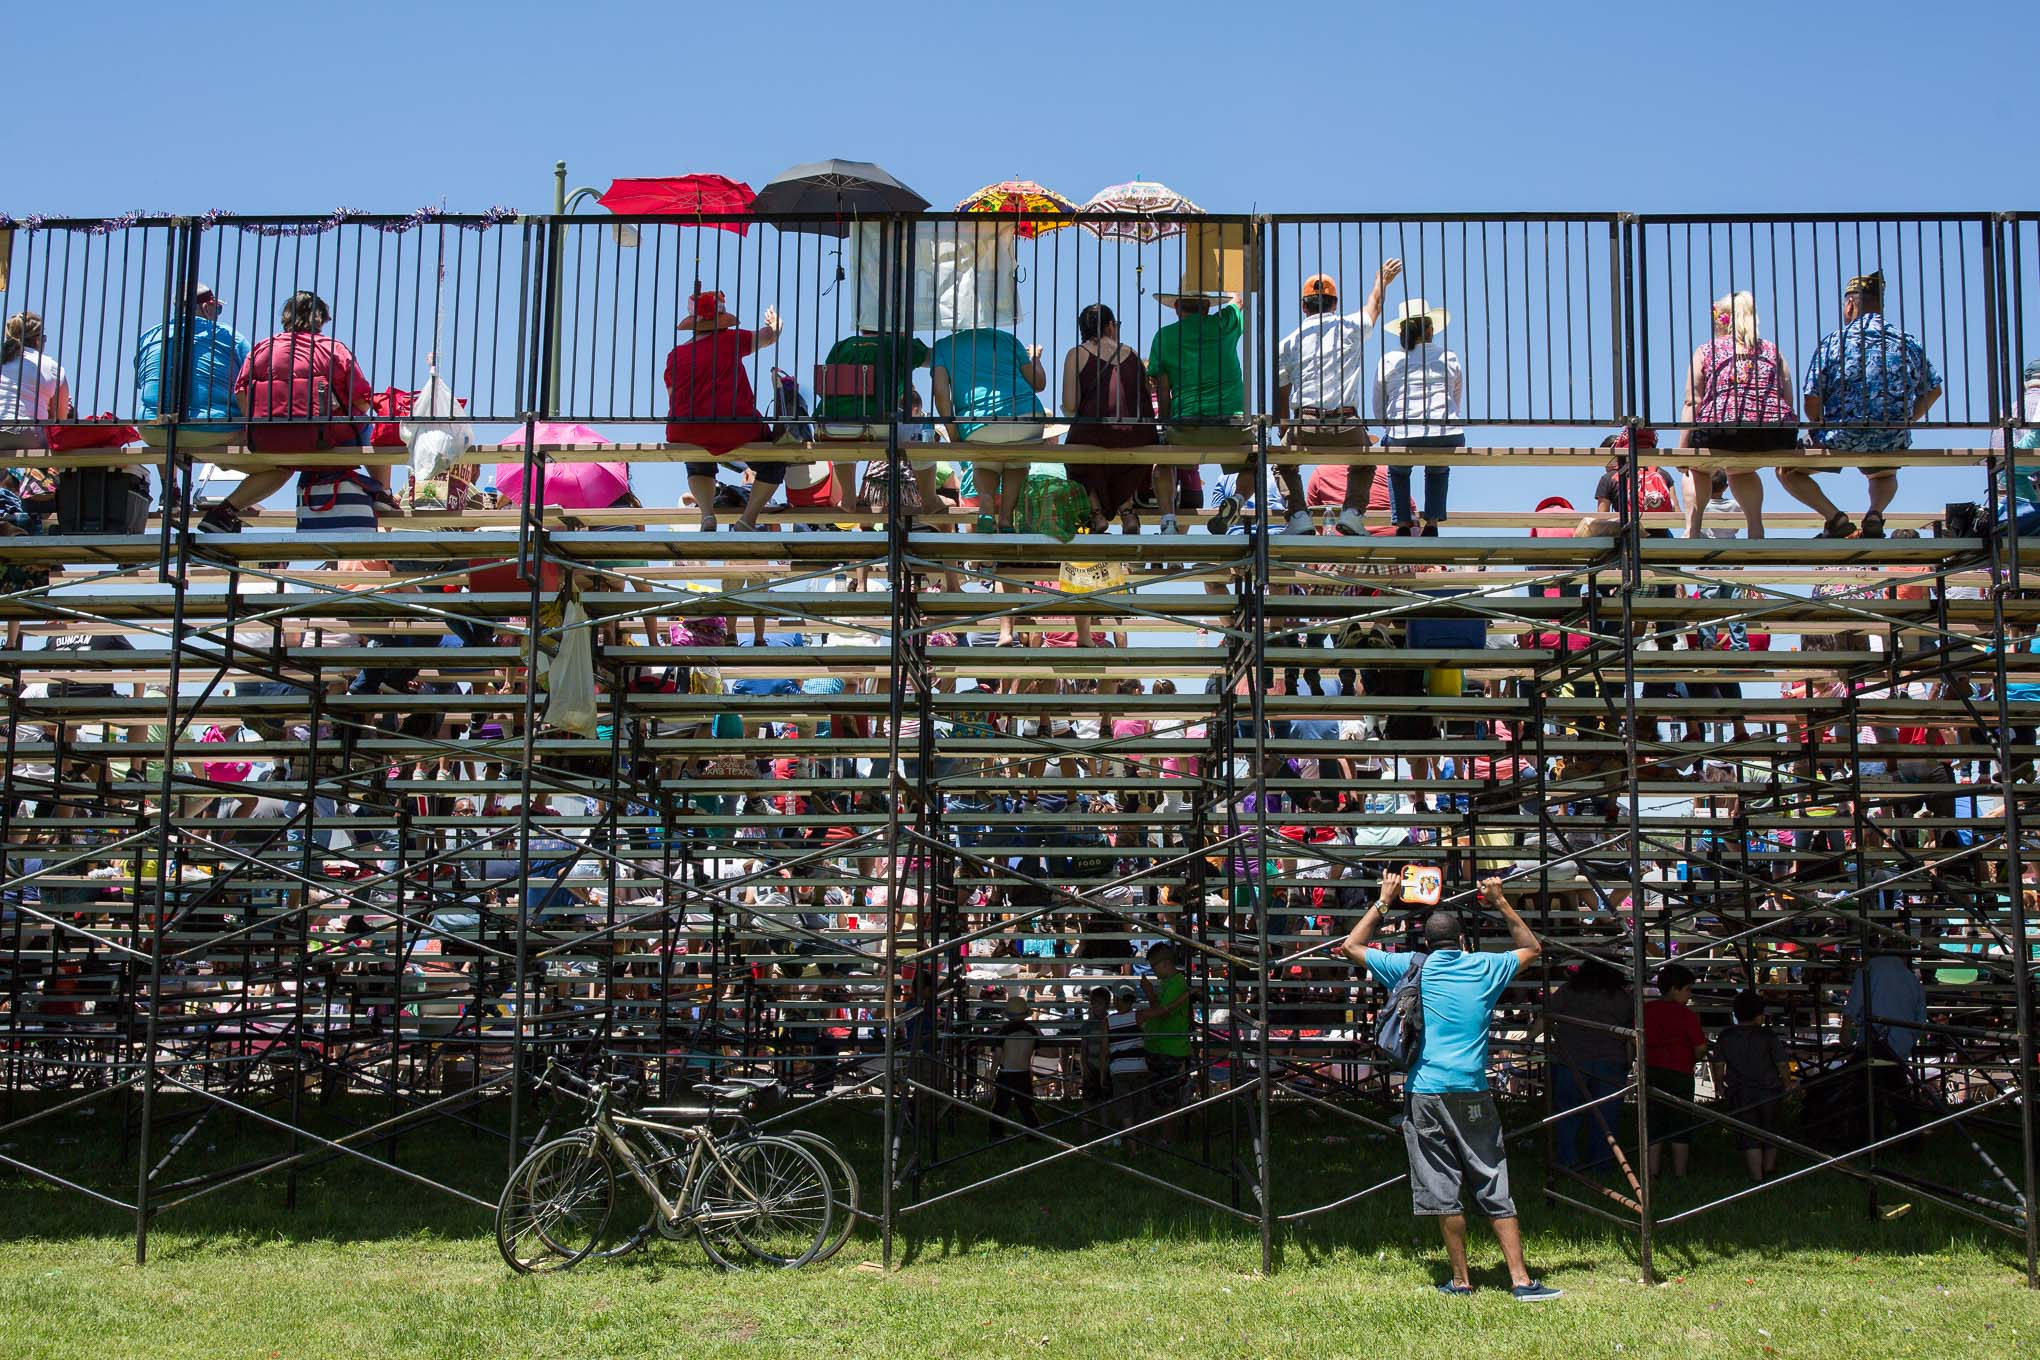 Attendees sit on risers overlooking the parade air Maverick Park. Photo by Scott Ball.